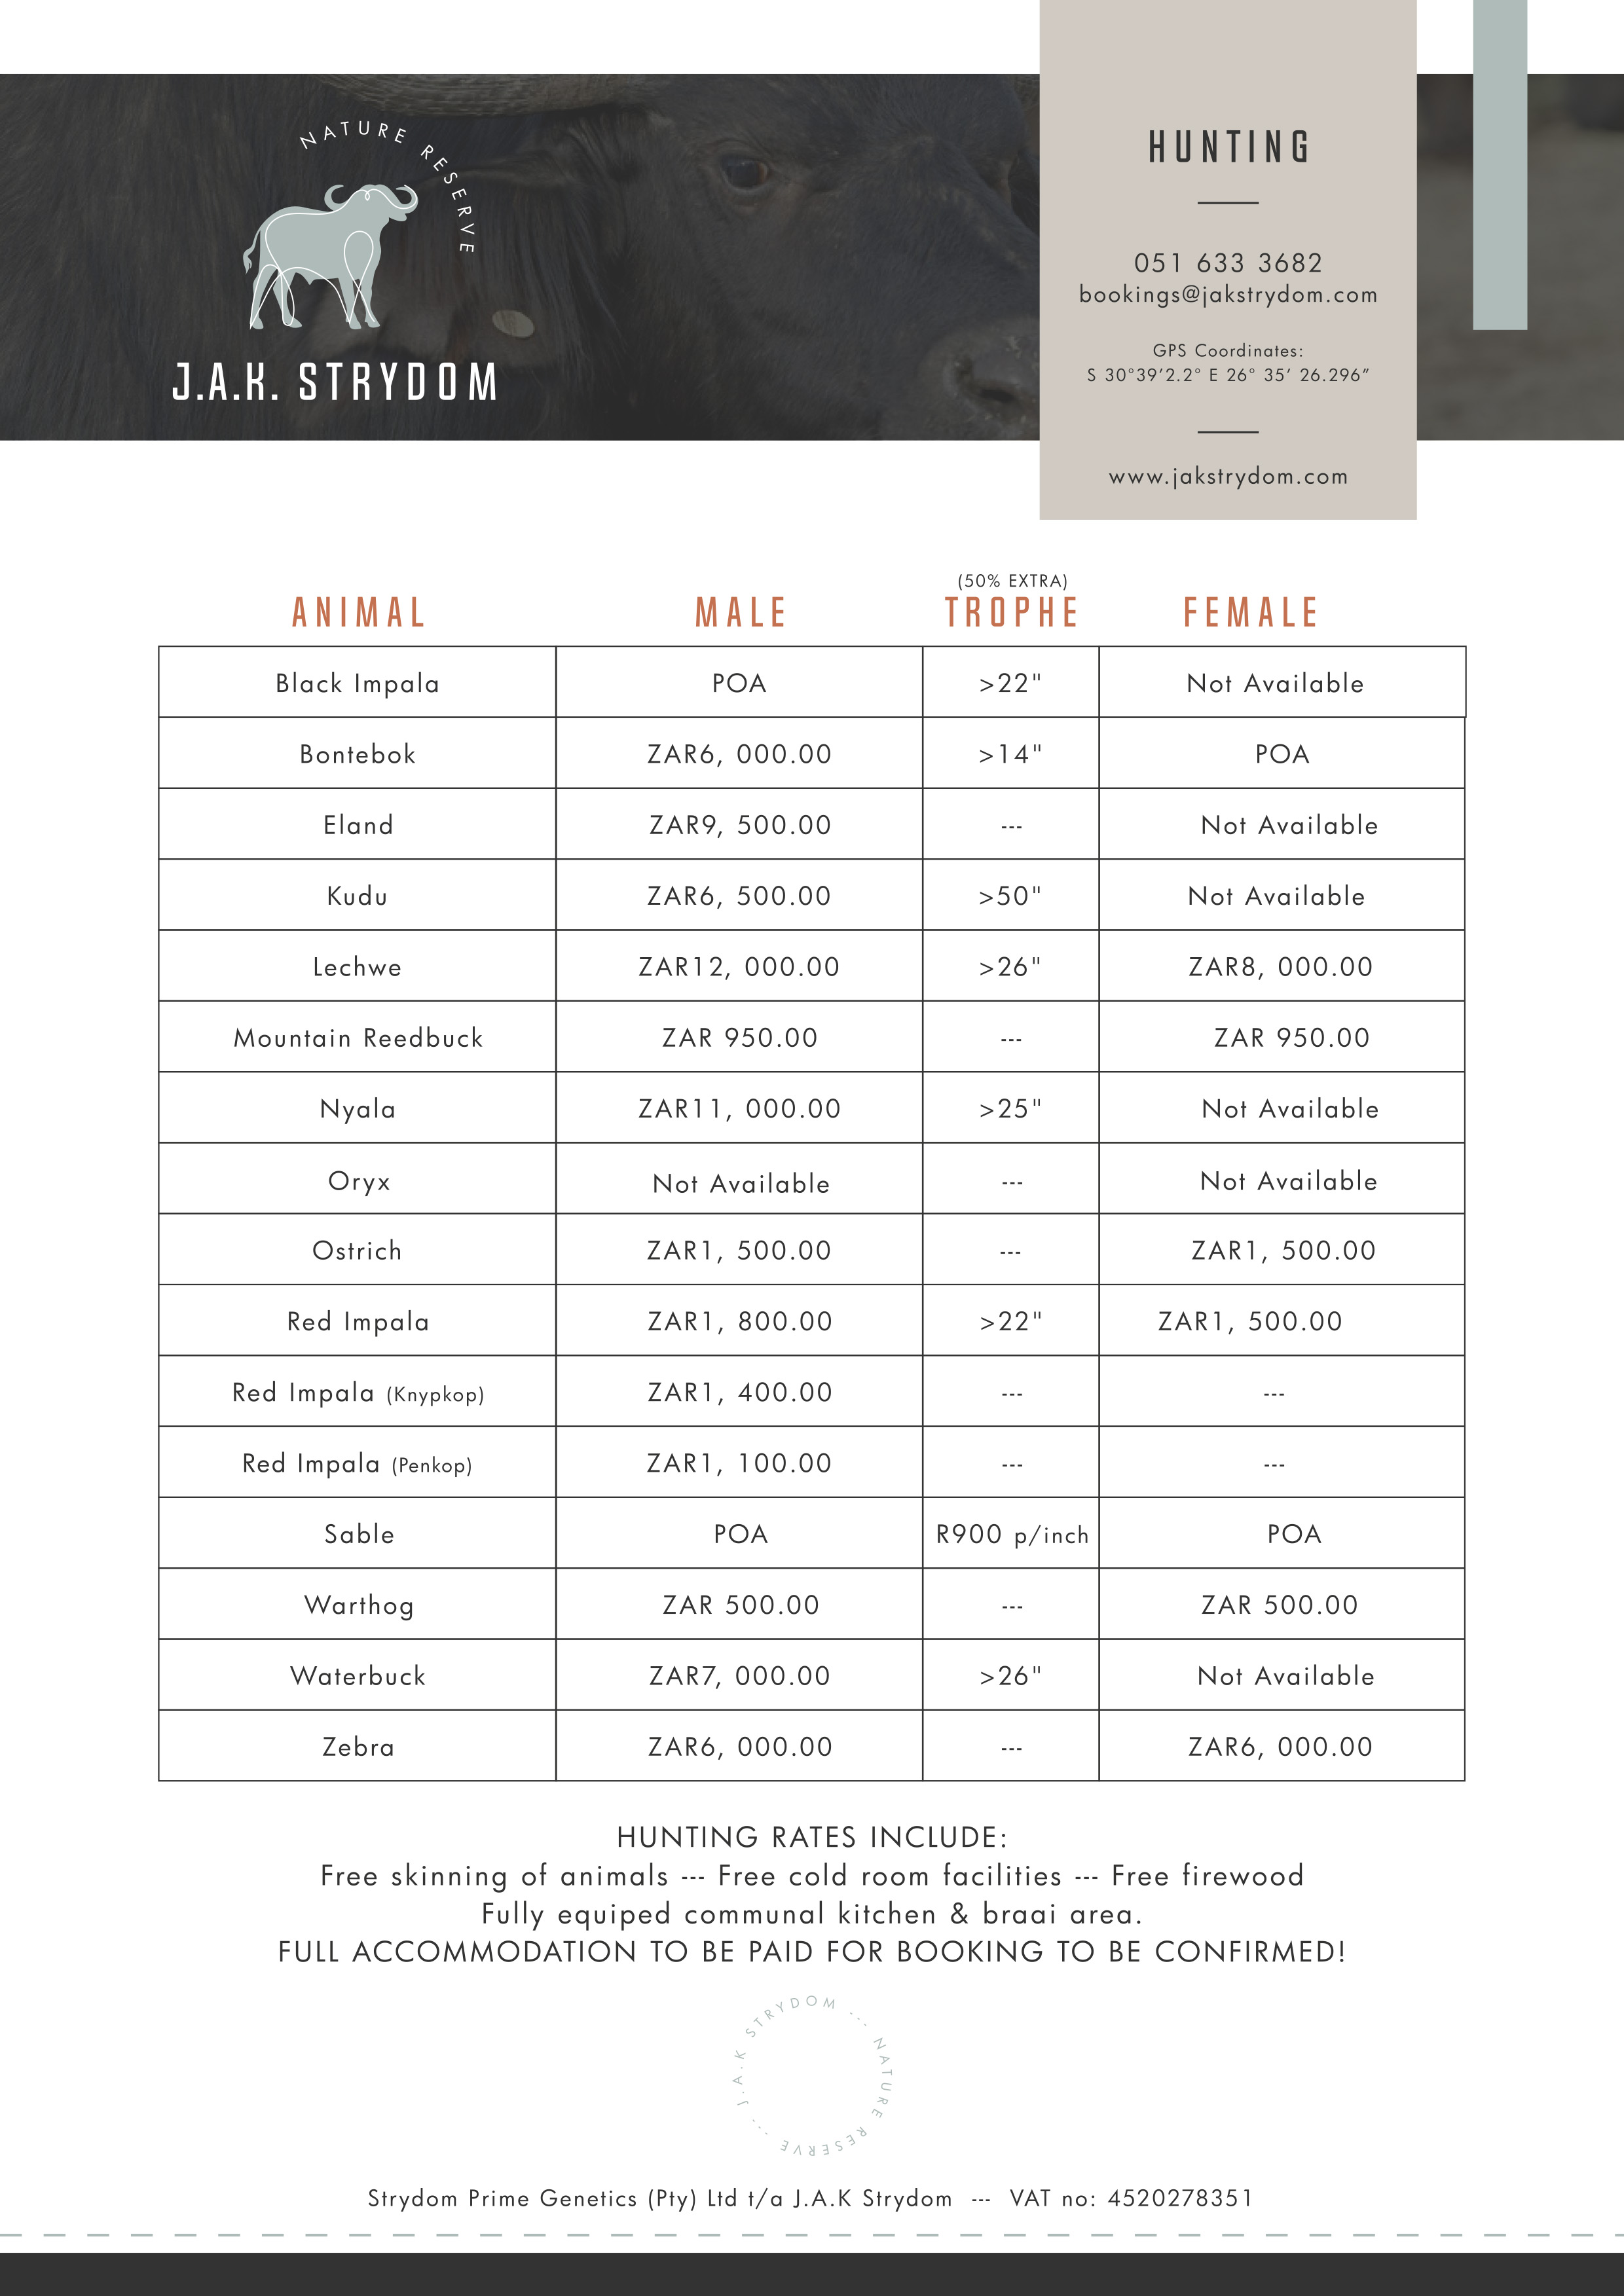 JAK STRYDOM - Hunting Packages Print